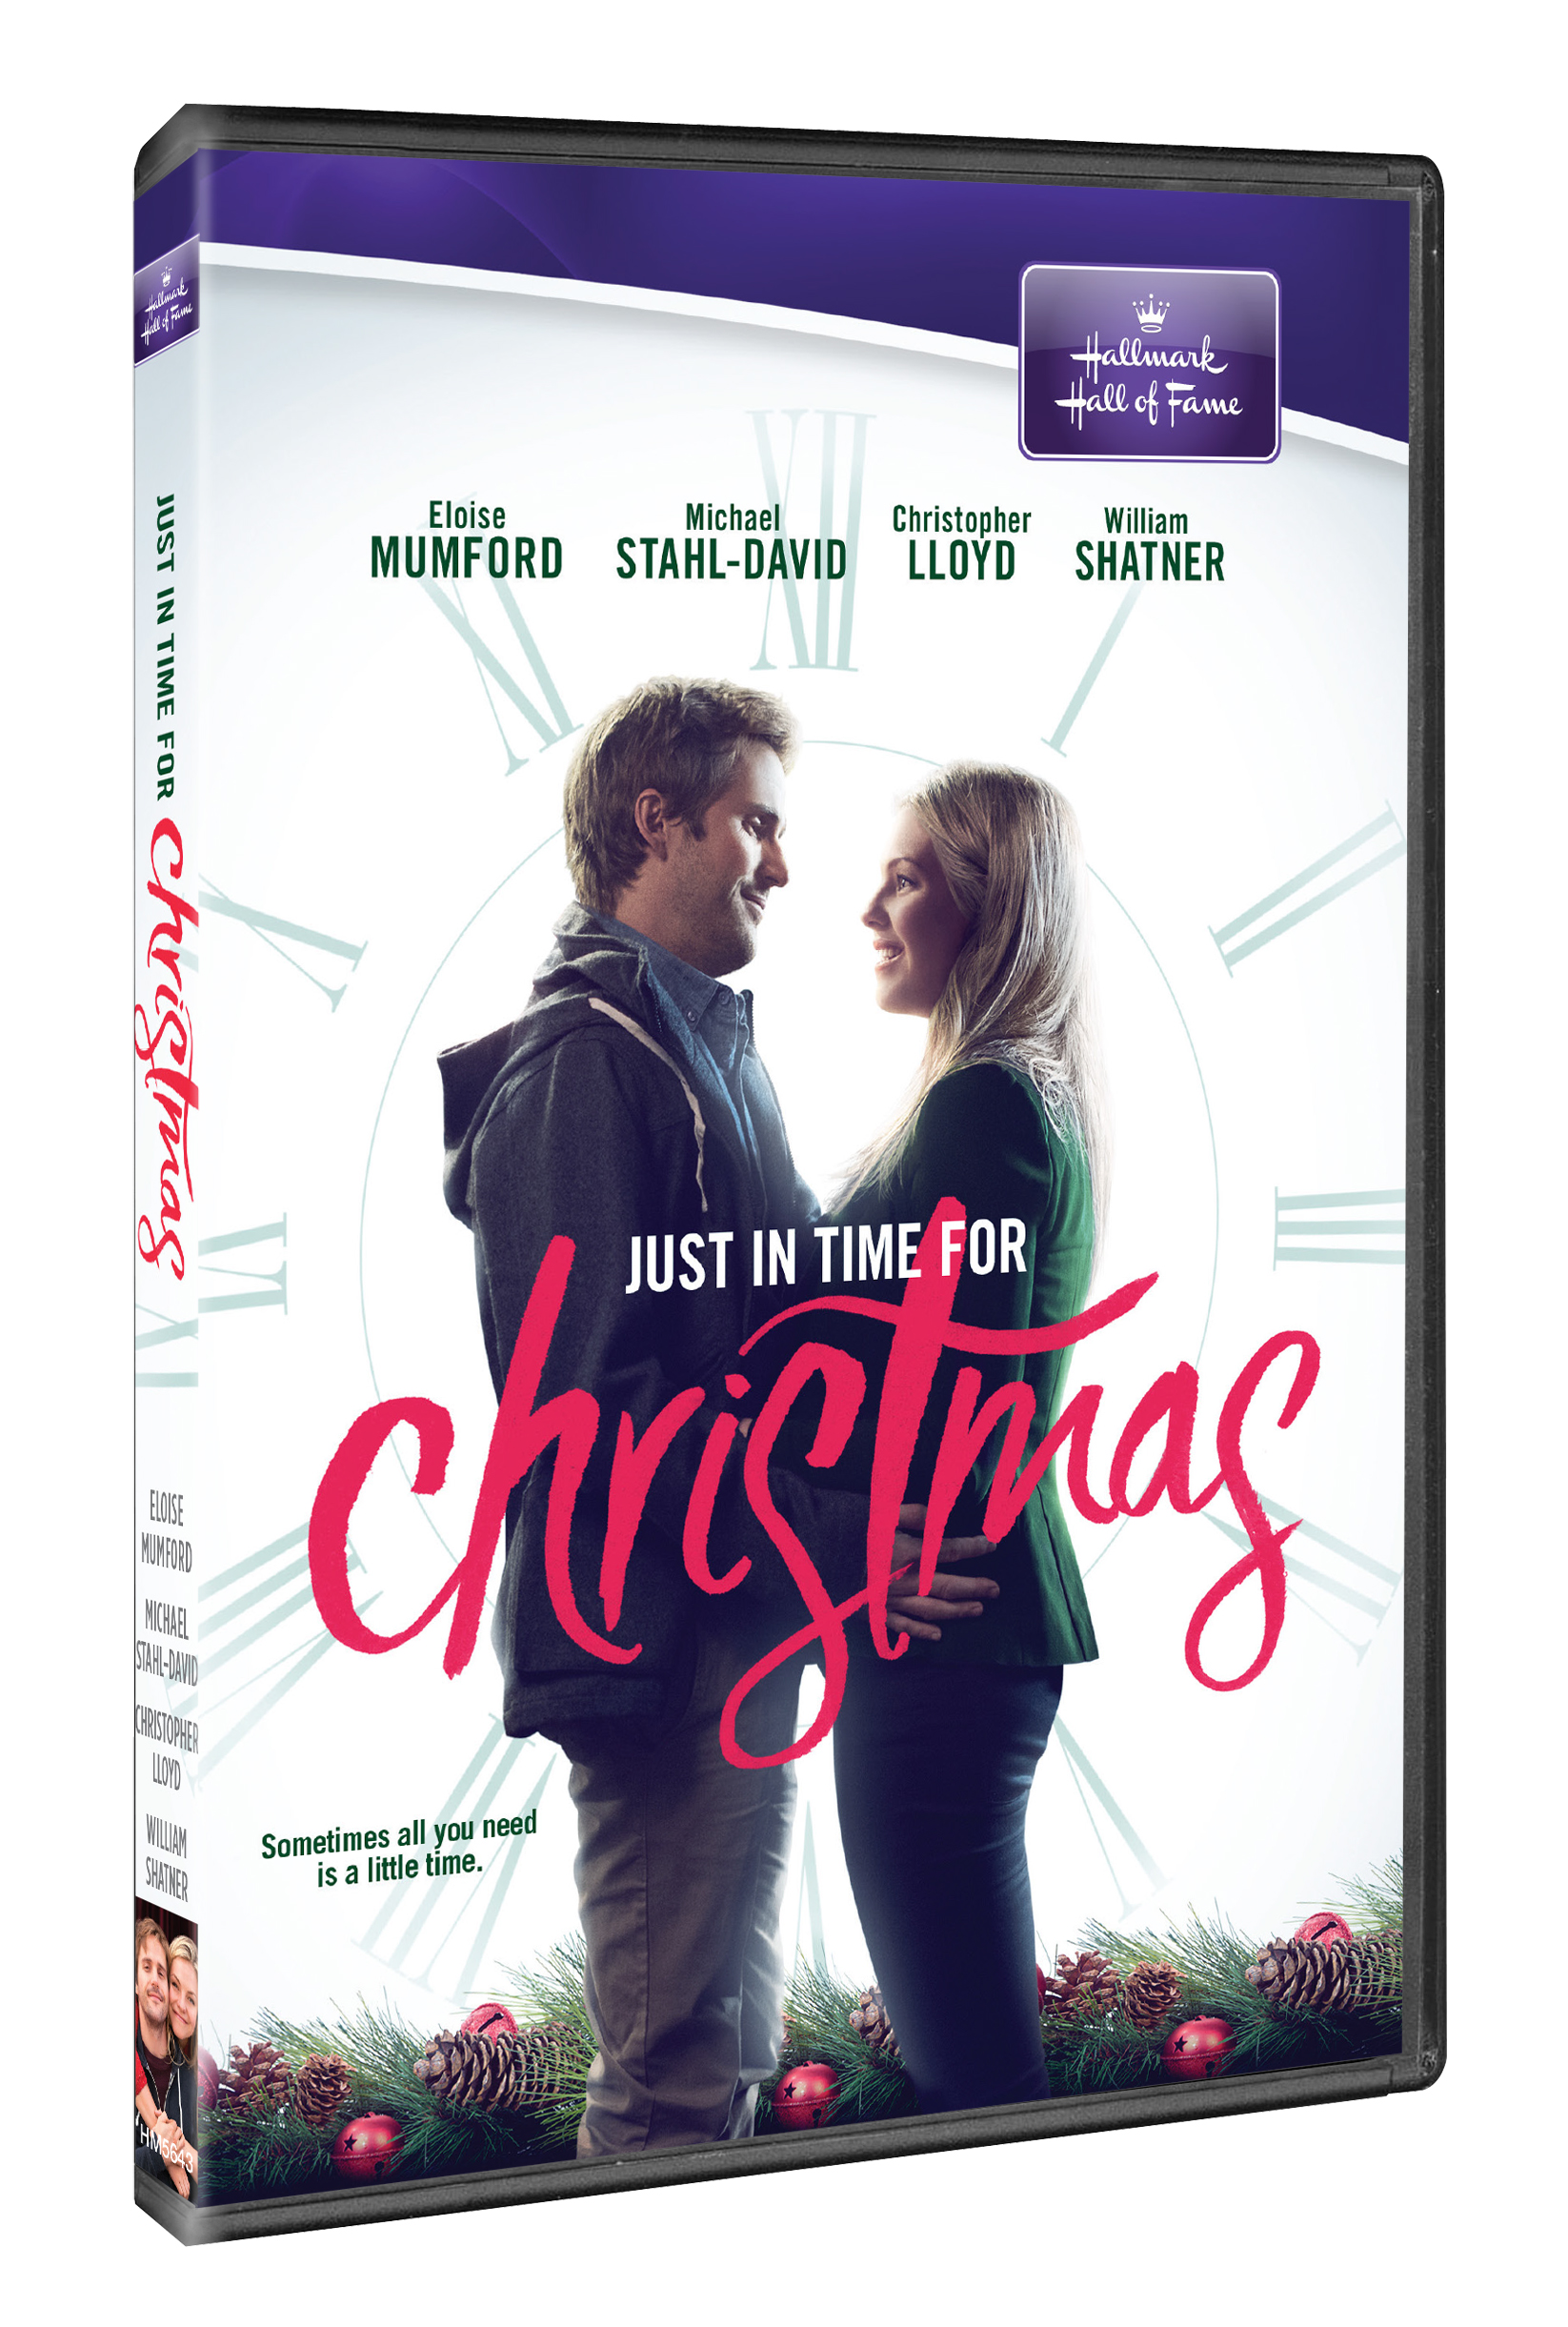 Just In Time For Christmas - Hallmark - Cinedigm Entertainment